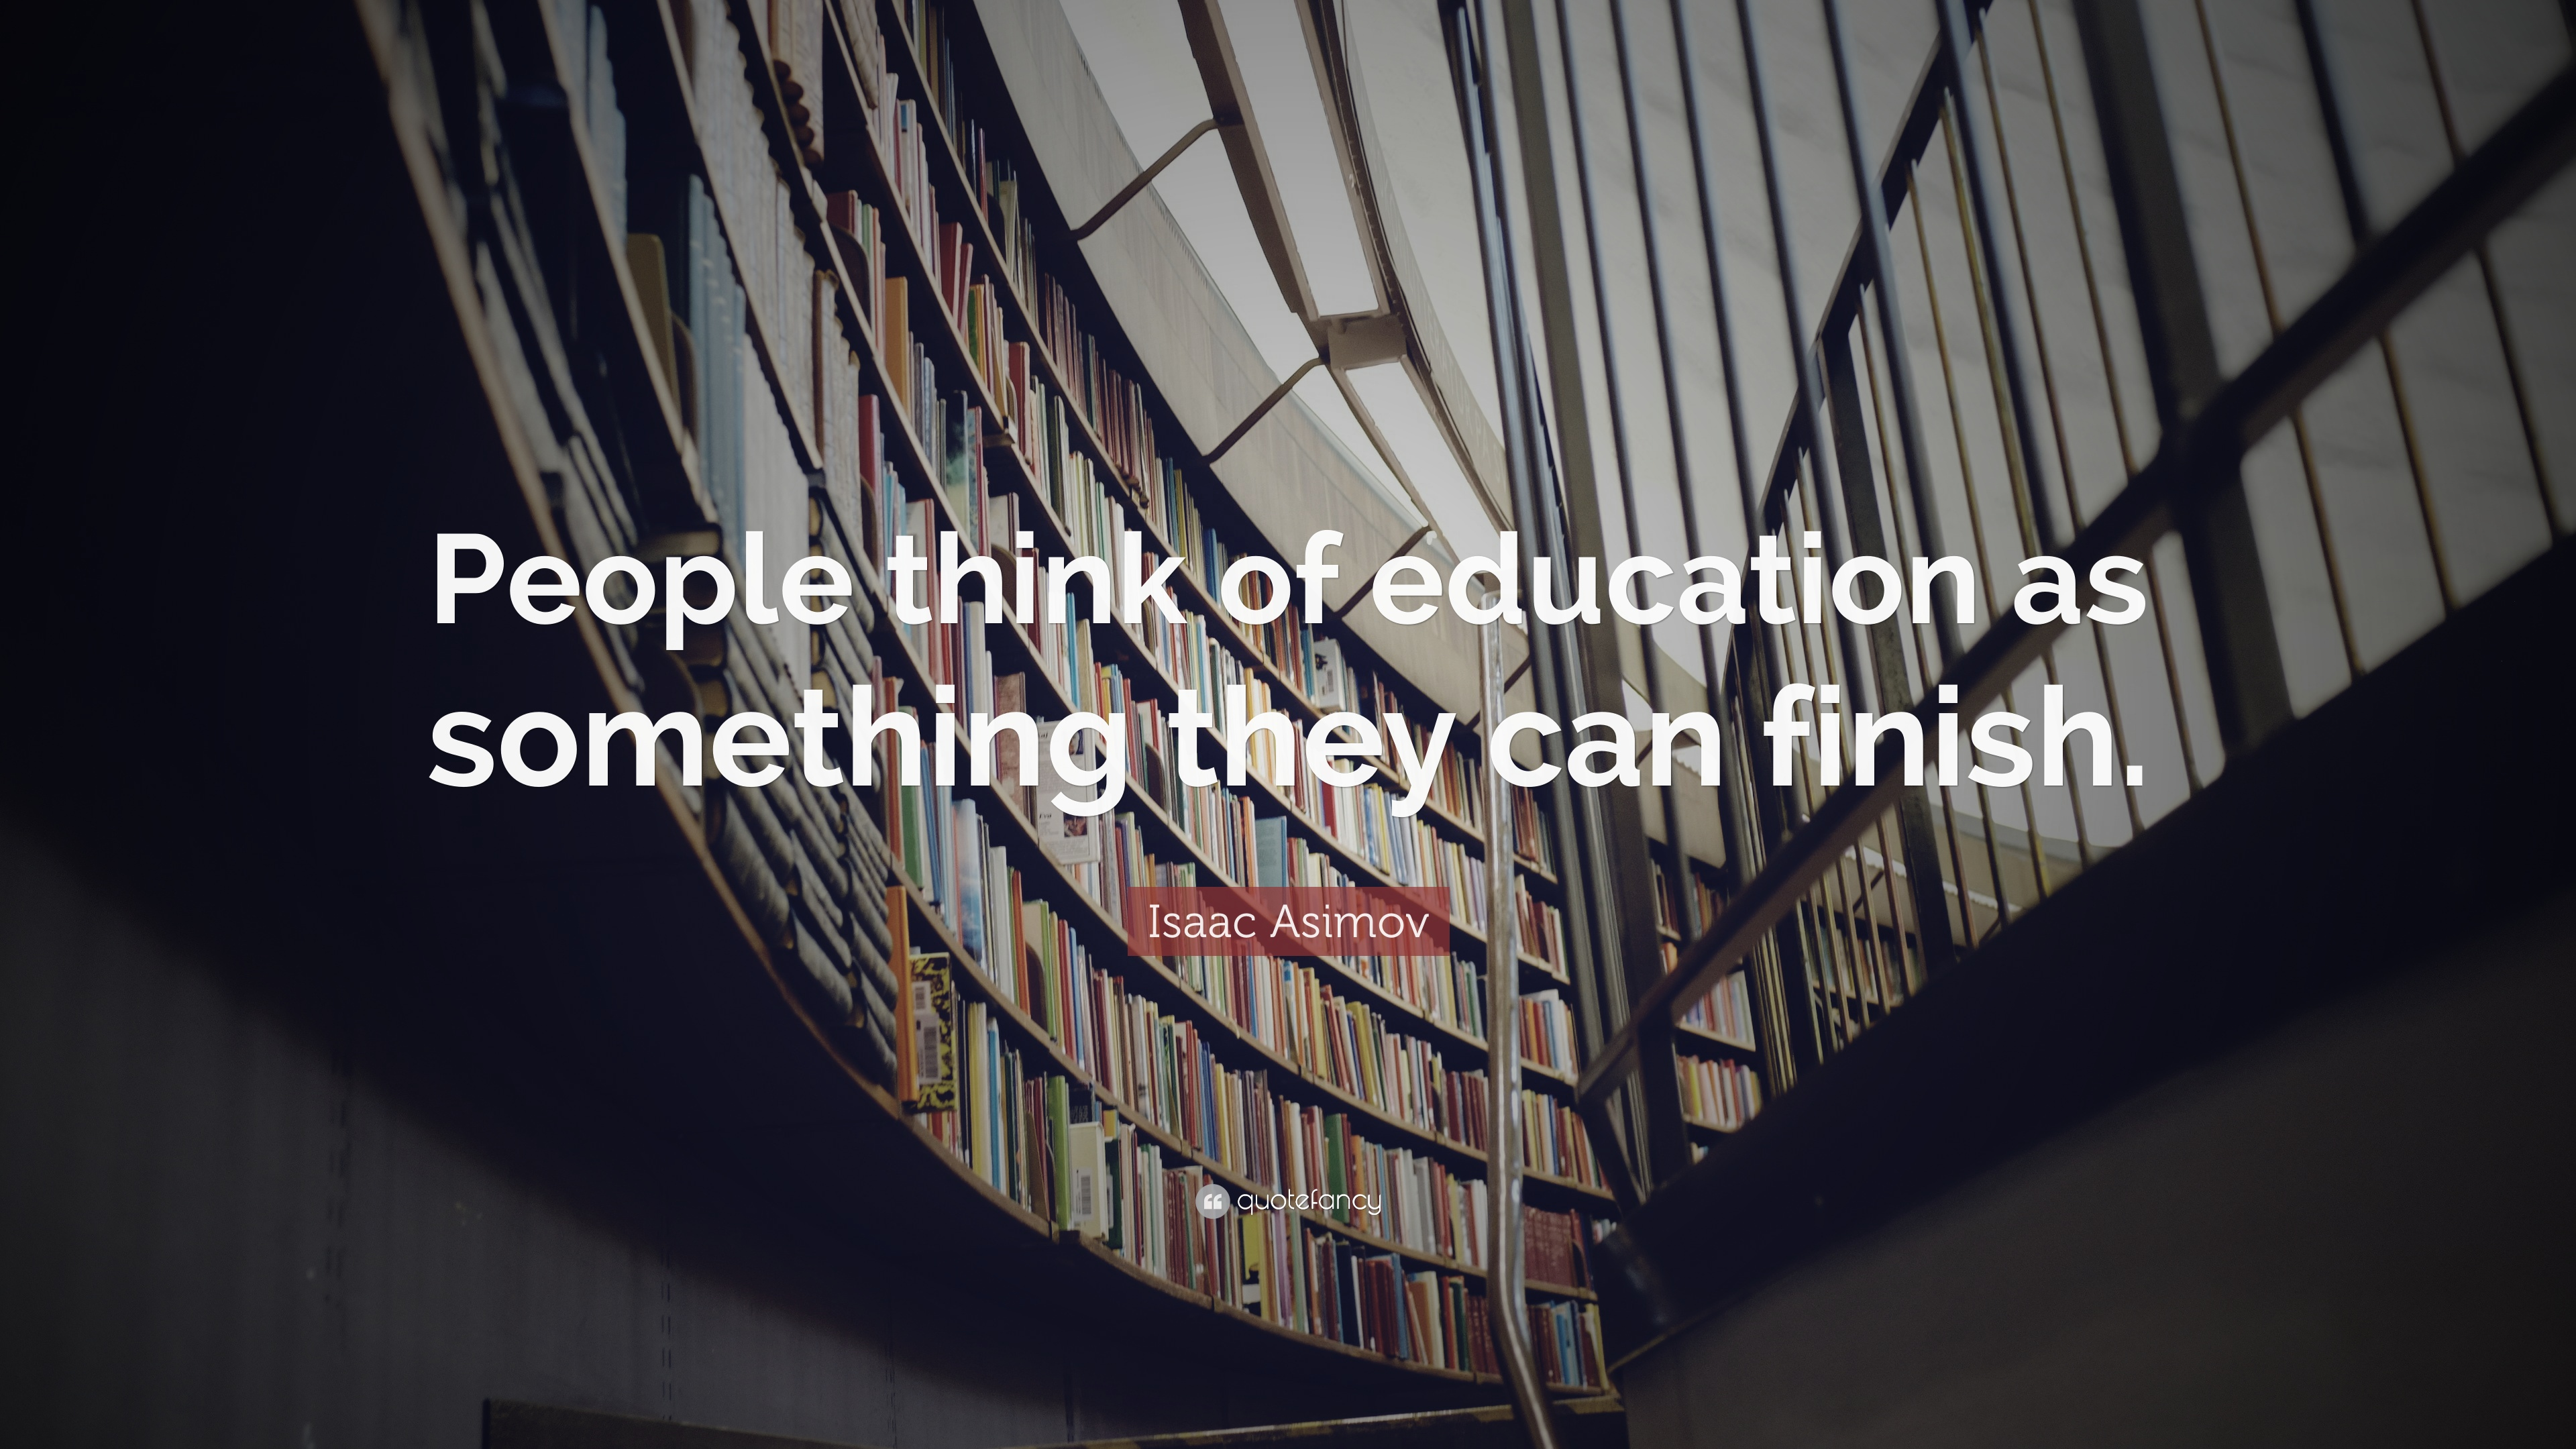 Isaac Asimov Quote: U201cPeople Think Of Education As Something They Can  Finish.u201d